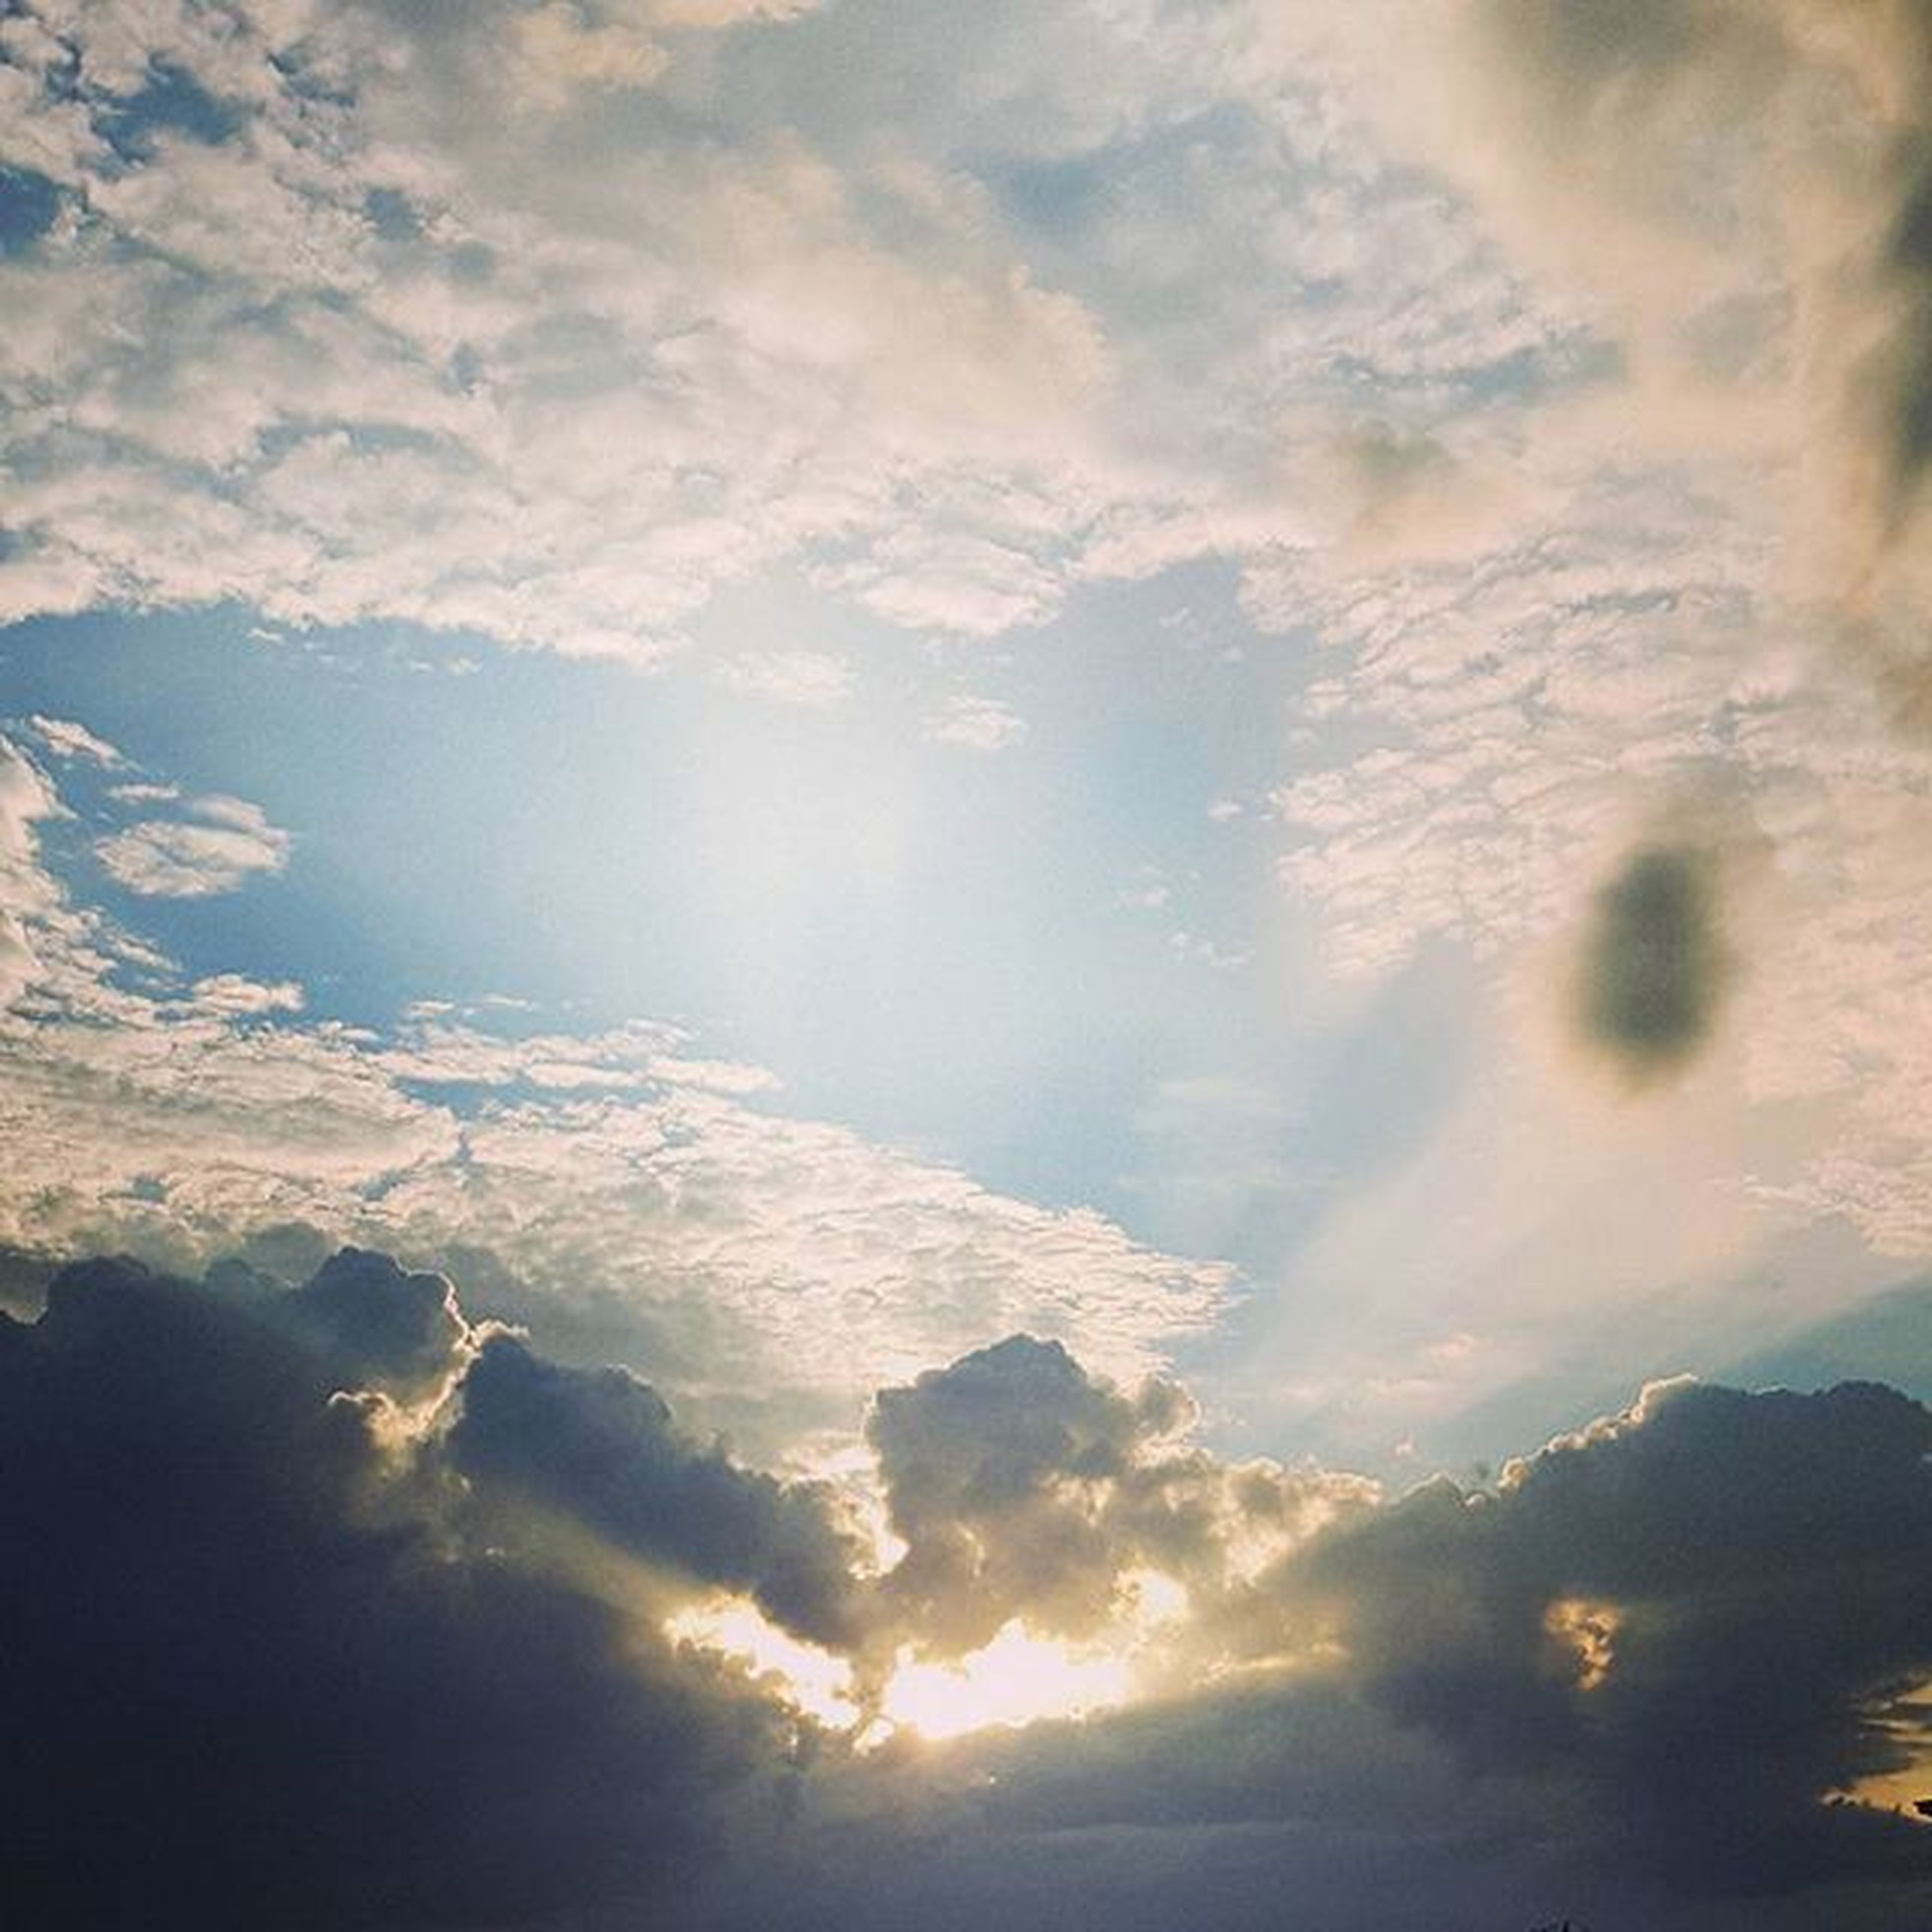 sky, scenics, cloud - sky, beauty in nature, tranquil scene, tranquility, cloudy, nature, sunset, idyllic, cloudscape, cloud, sun, sunlight, weather, sunbeam, majestic, outdoors, sky only, water